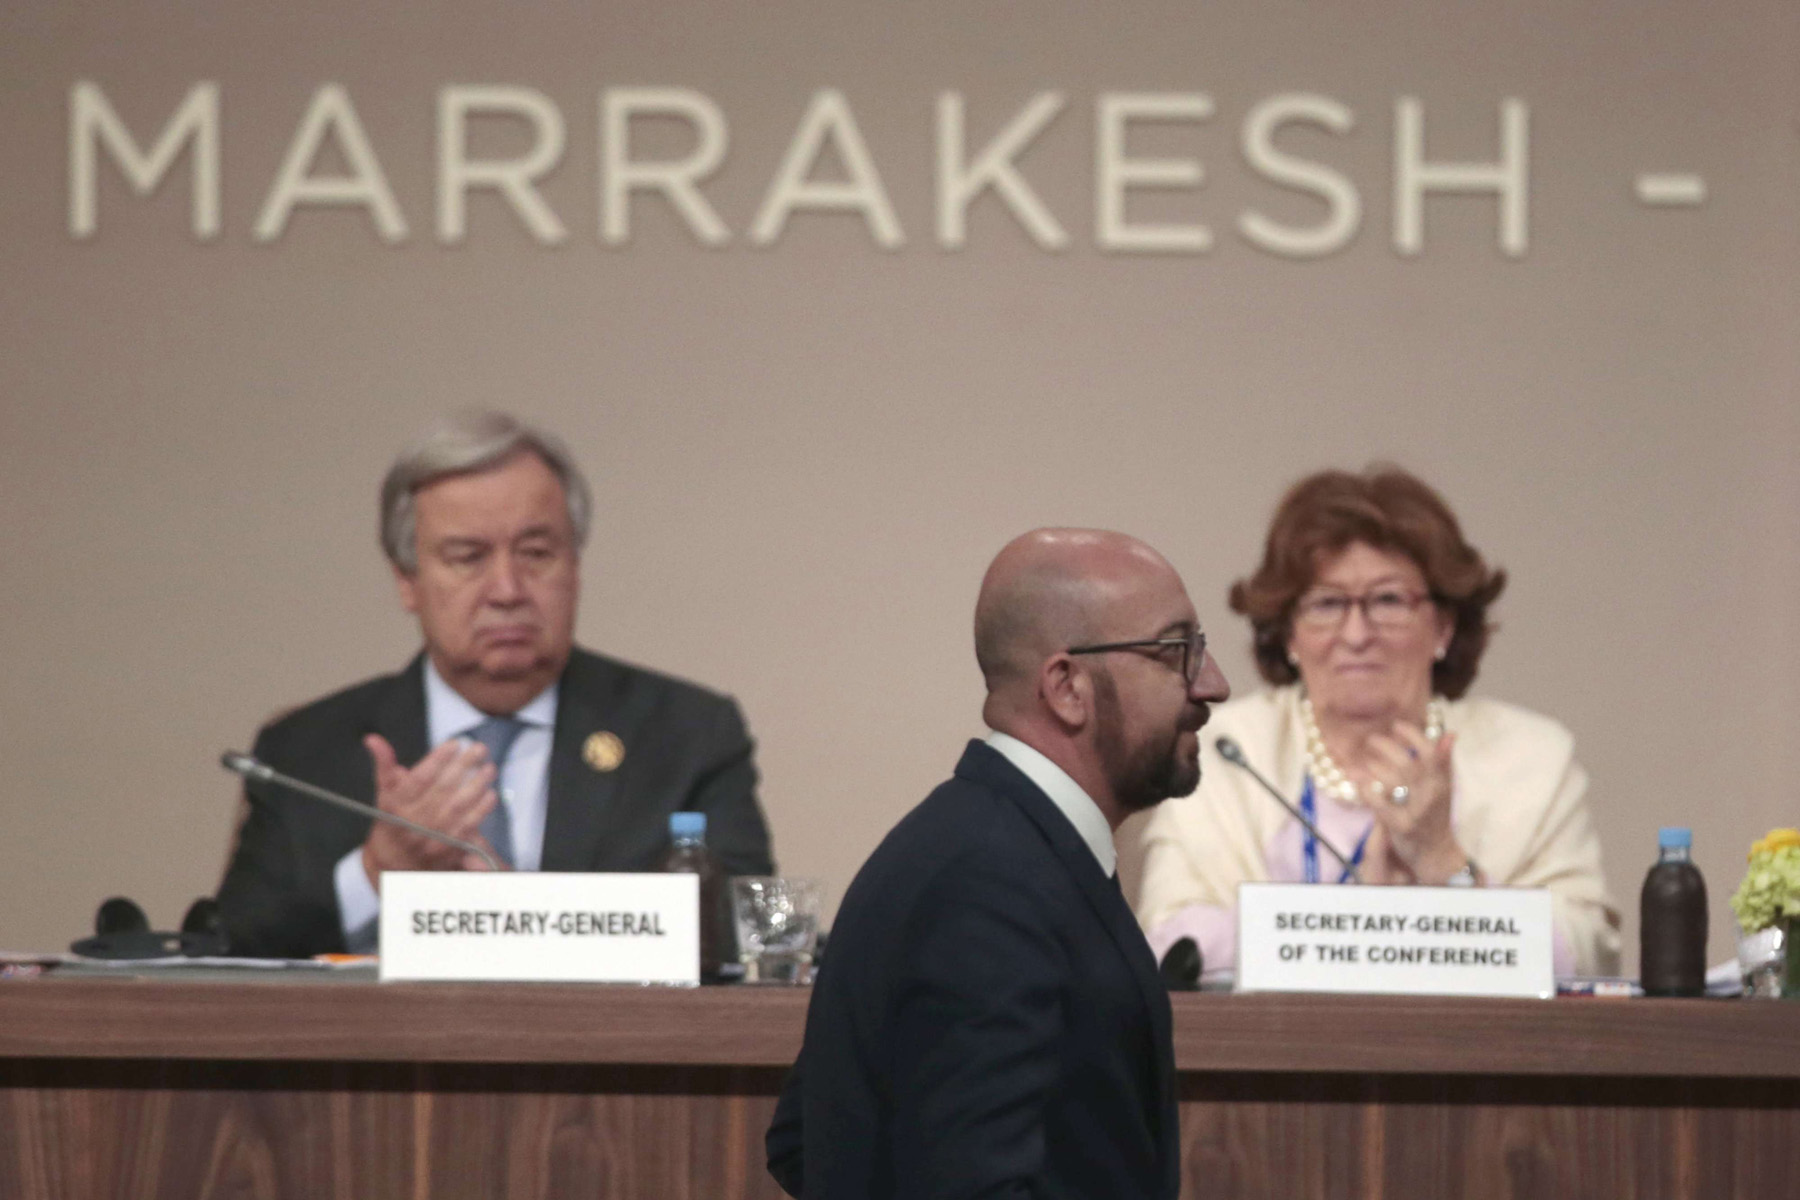 Belgian Prime Minister Charles Michel walks past UN Secretary-General Antonio Guterres (L) and Special Representative of the United Nations Secretary-General for International Migration Louise Arbor during the opening session of a UN Migration Conference in Marrakech, December 10. (AP)